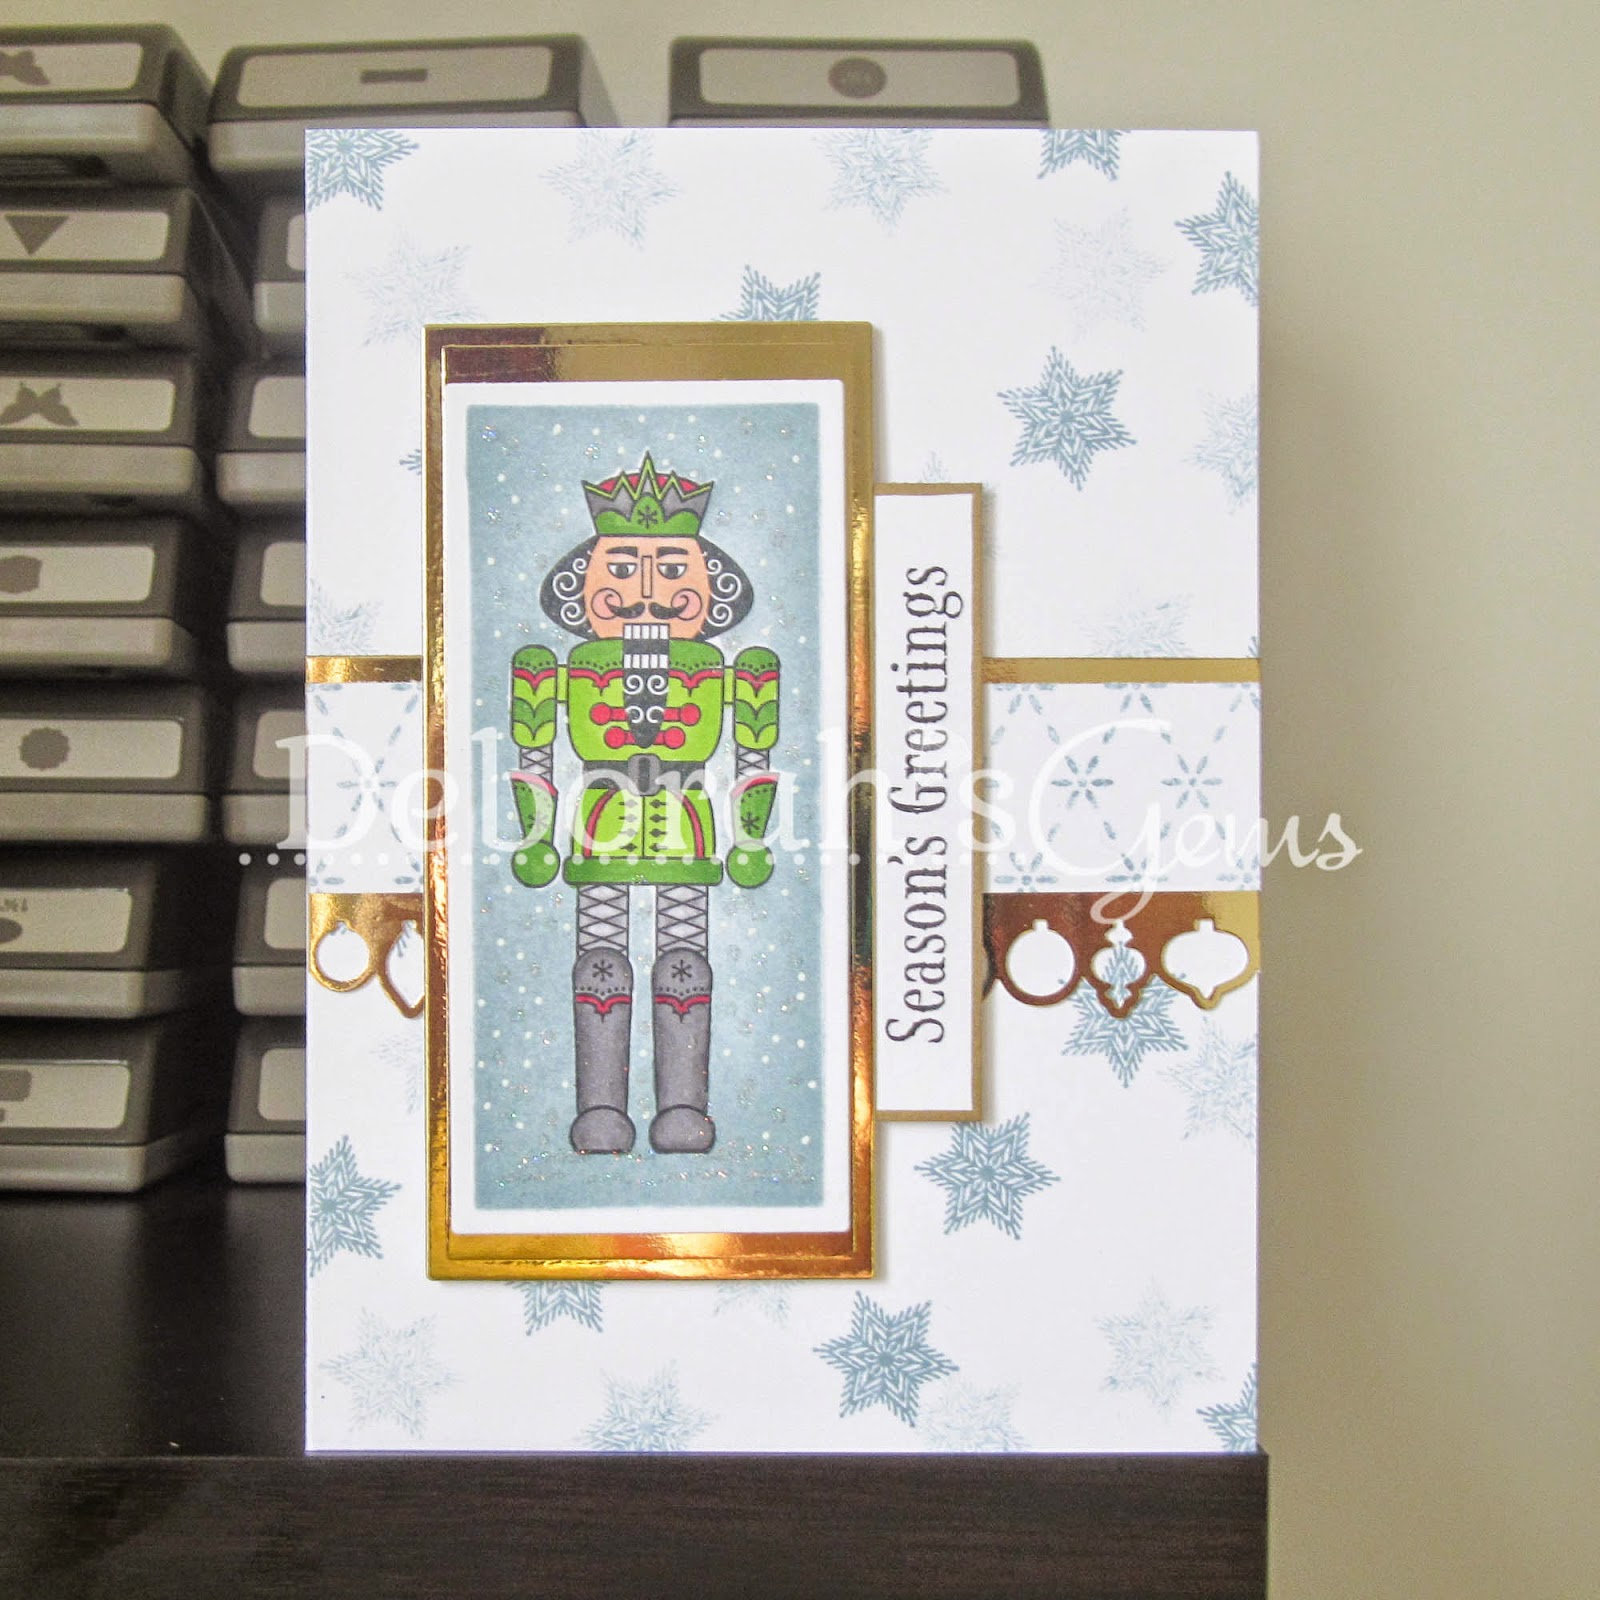 Seaon's Greetings sq - photo by Deborah Frings - Deborah's Gems